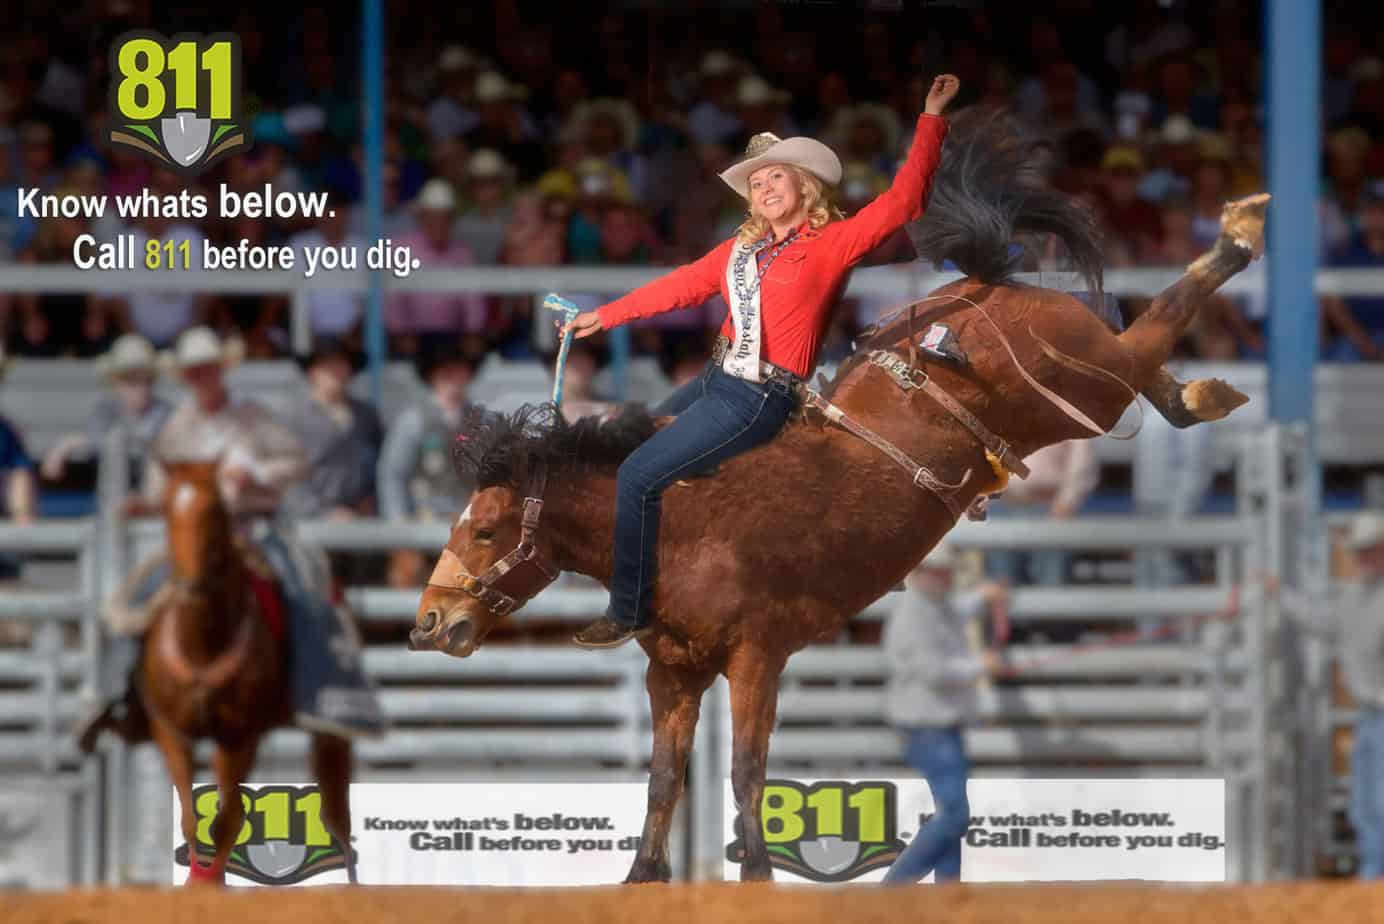 Rodeo queen on a bucking bronco green screen photo for Washington 811